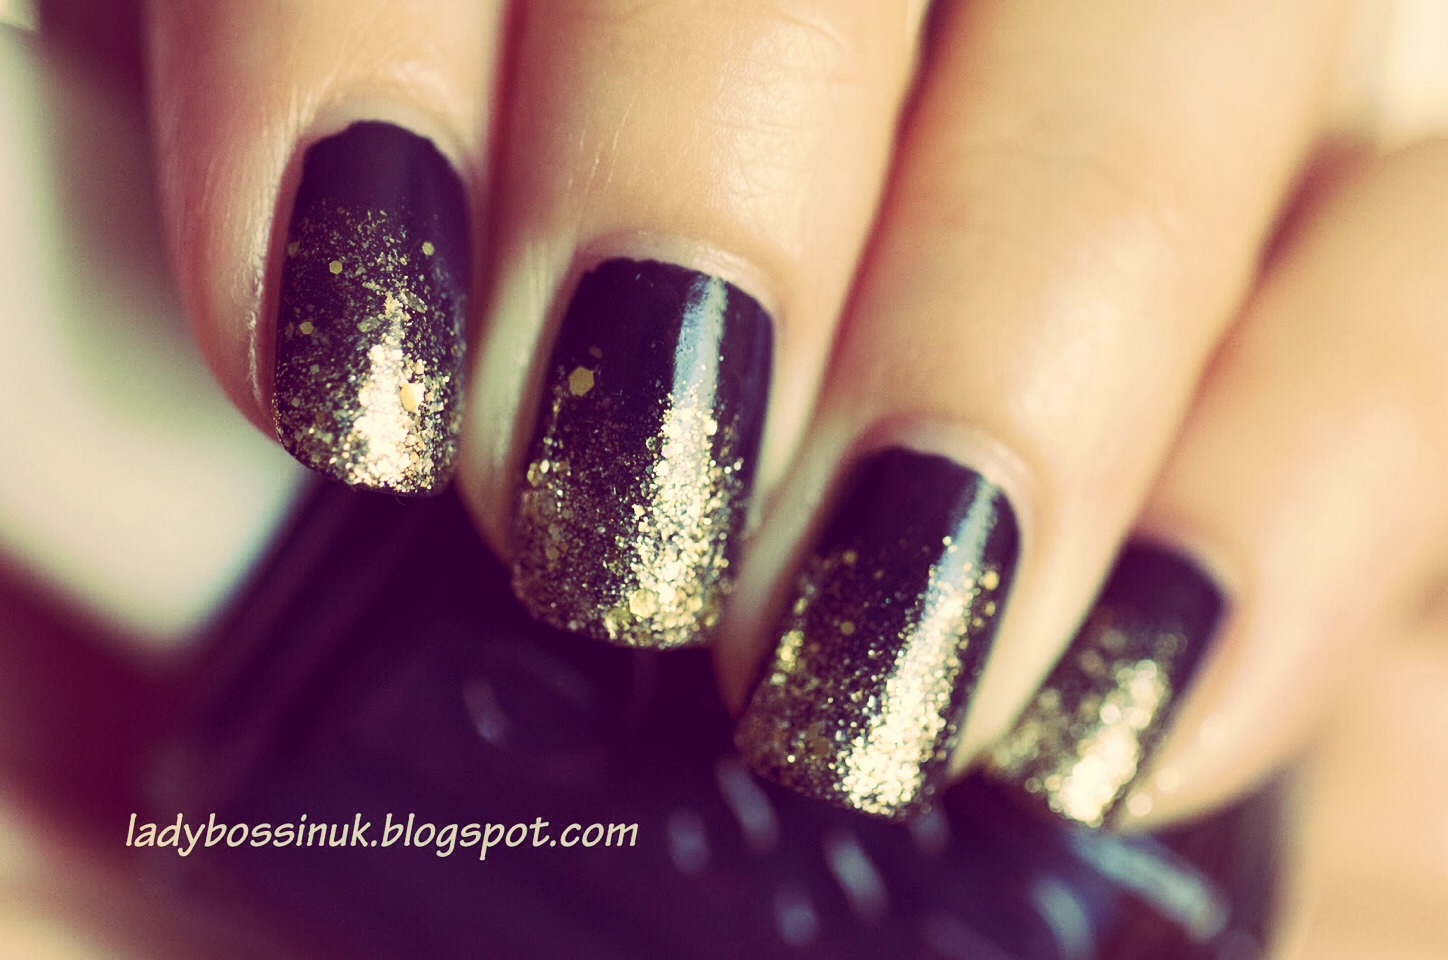 If your nails are just chipped on the ends you can try a gradient with the glitter like this. :)